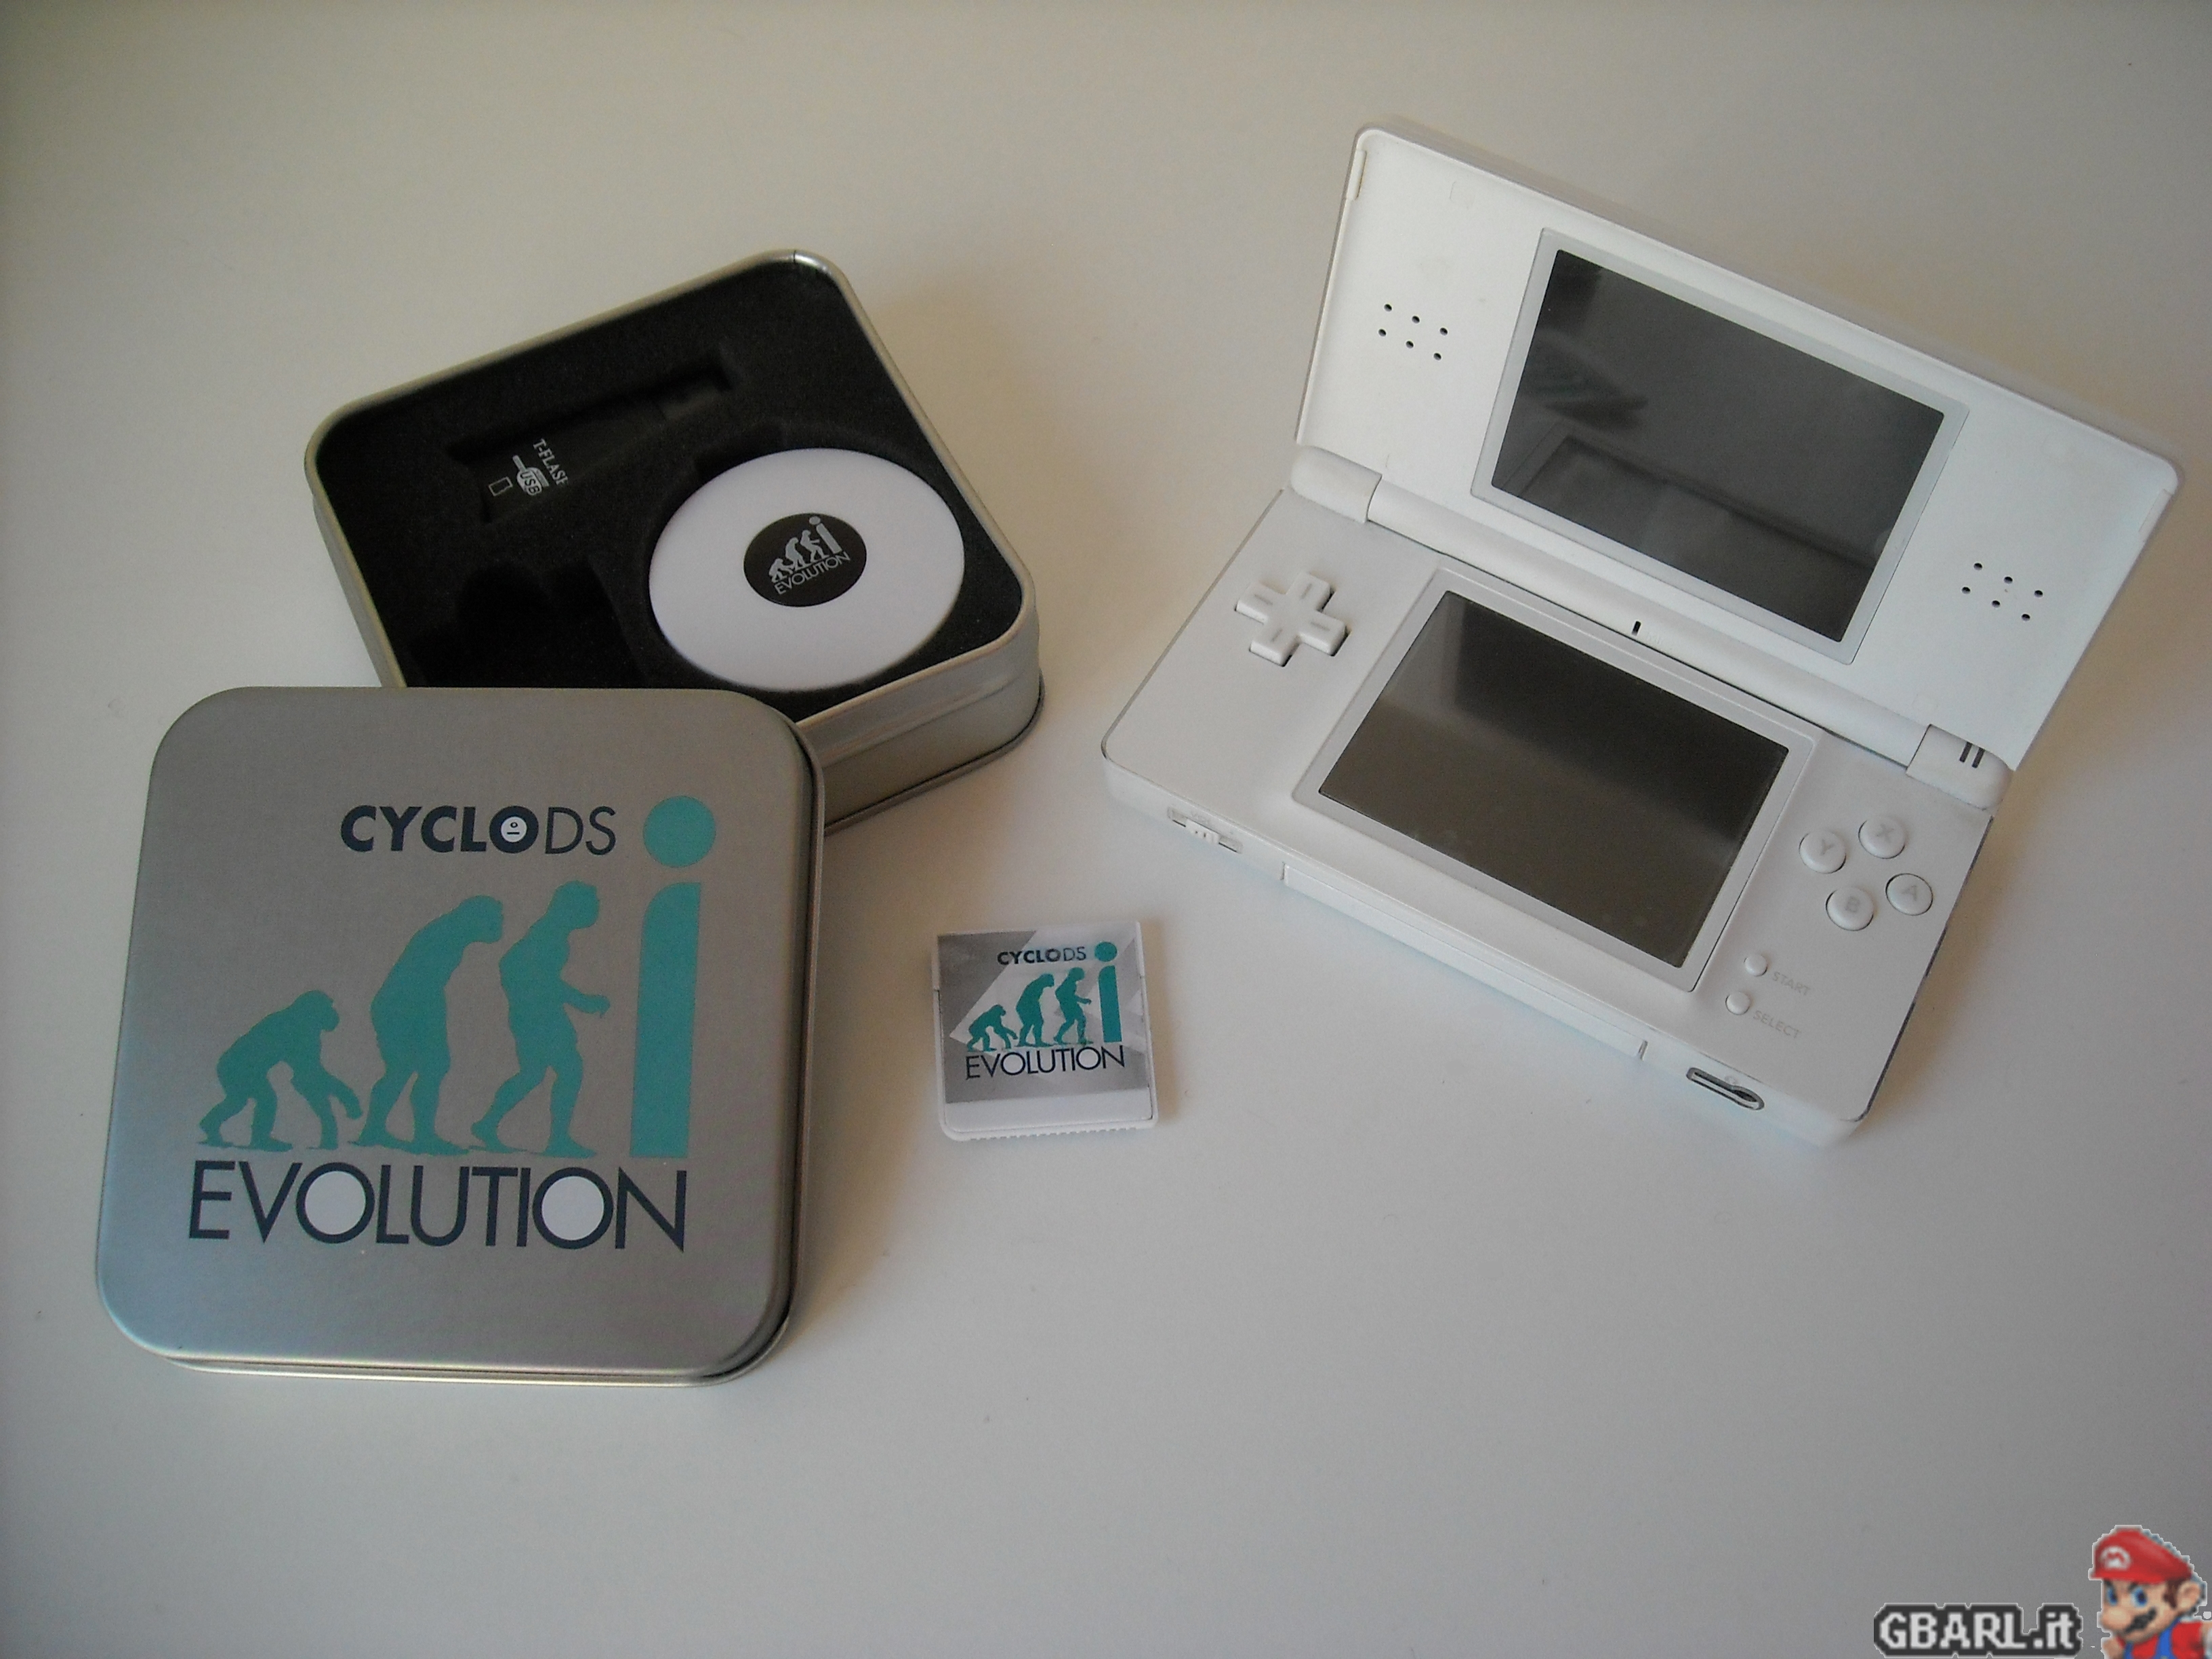 CycloDS Evolution / iEvolution Firmware v2.2 - .: GBArl.it ...